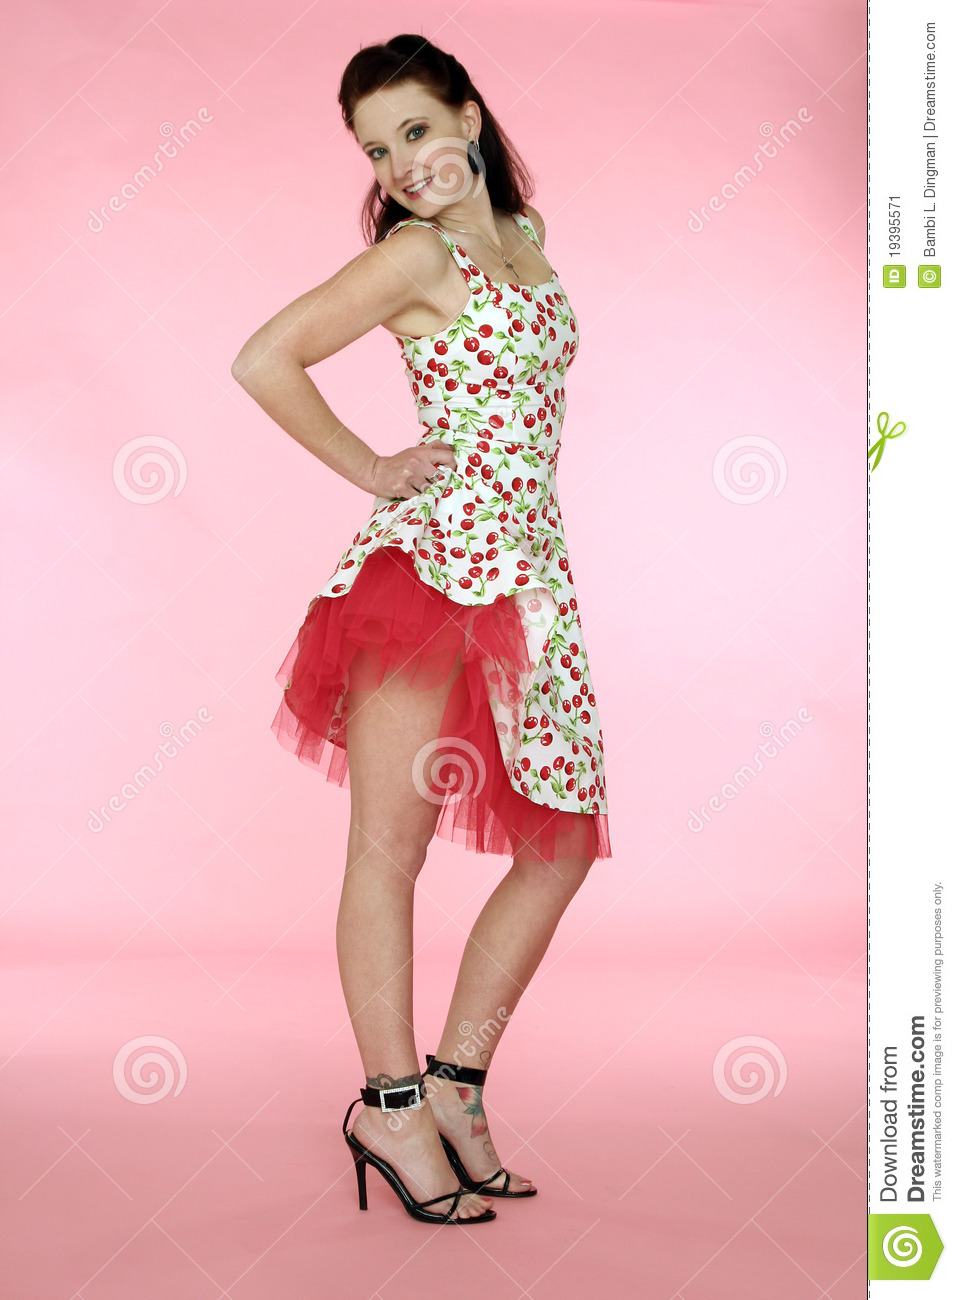 Pinup Woman In Cherry Dress Stock Image Image 19395571